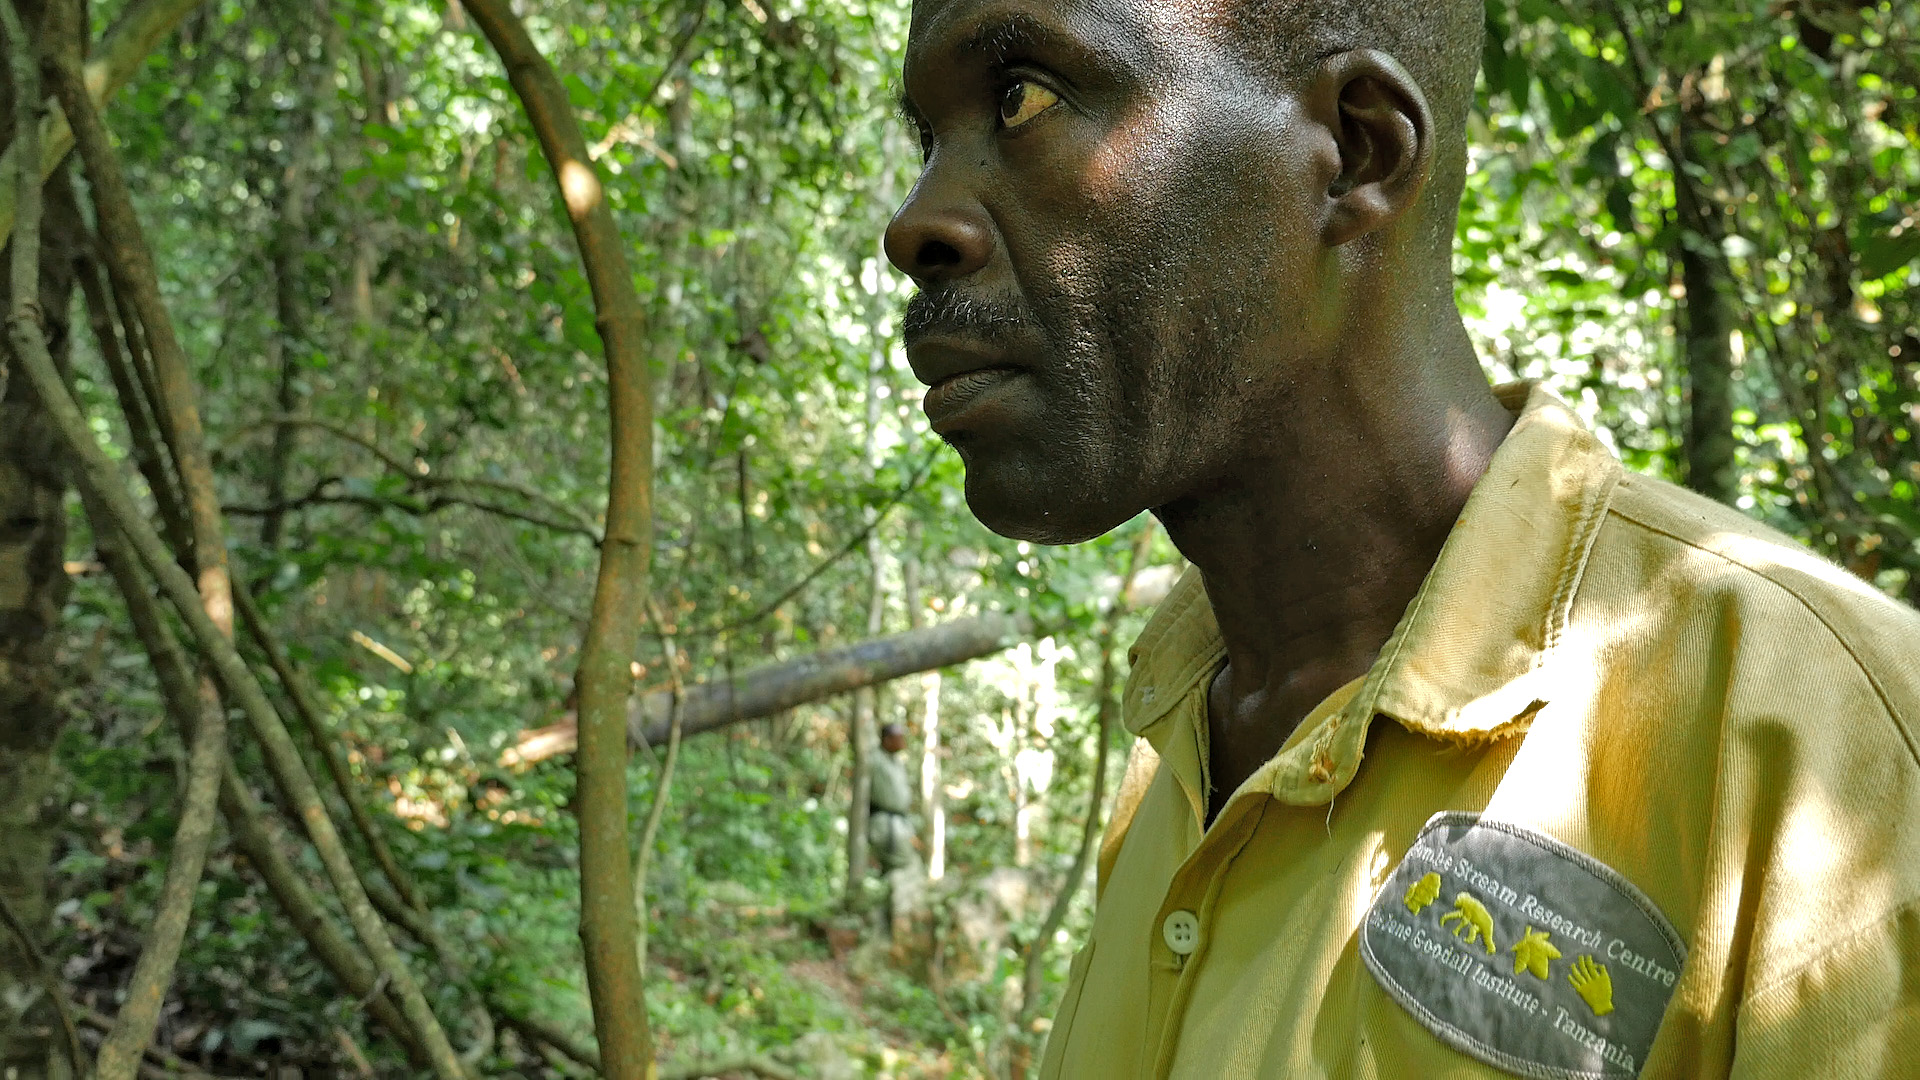 Head Above the Rest: Gabo, Leader of Gombe's Chimpanzee Research Team